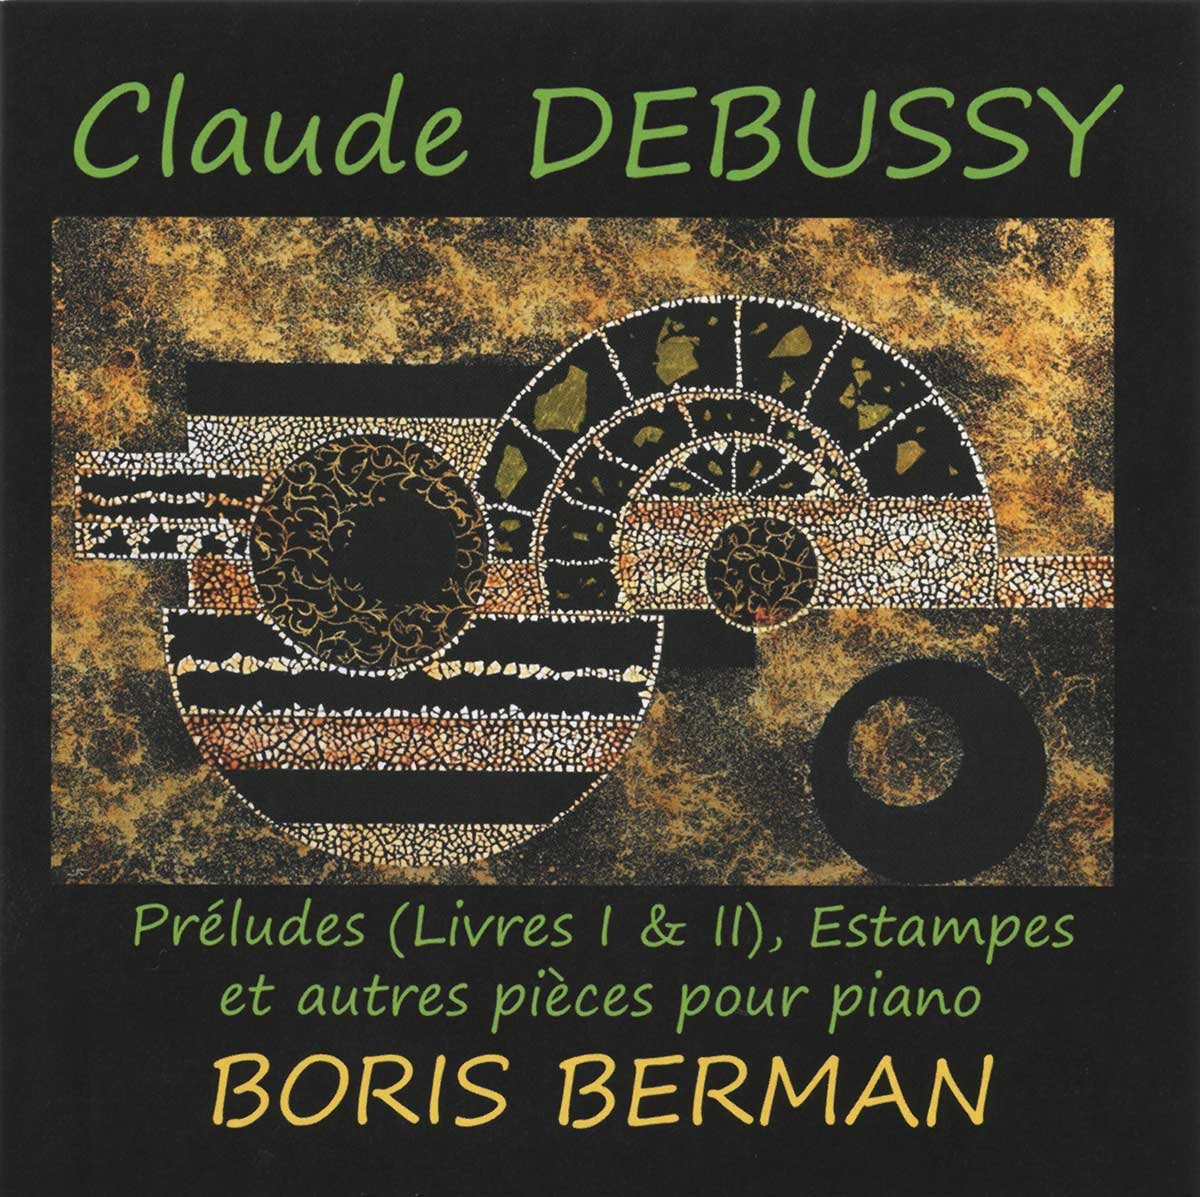 Debussy - Preludes (book 1 & 2), Estampes and other pieces, Le Palais des Degustateurs, PDD  014